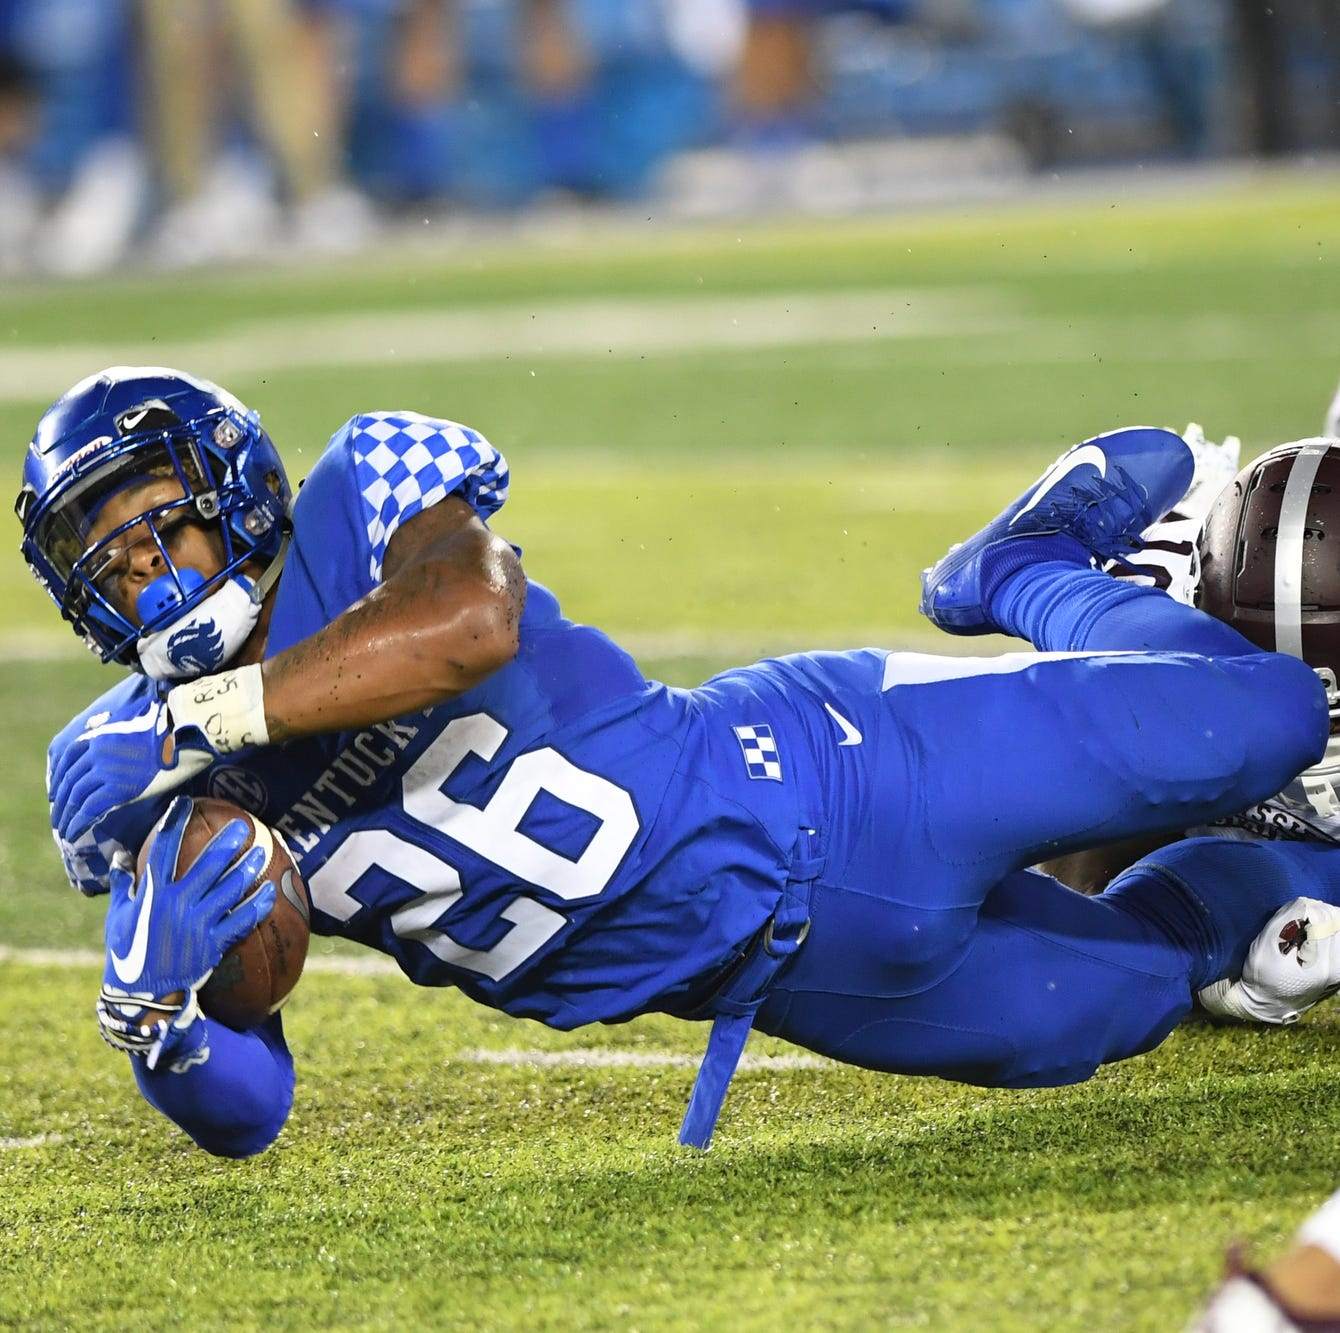 Benny Snell's Heisman Trophy odds improve after Mississippi State win